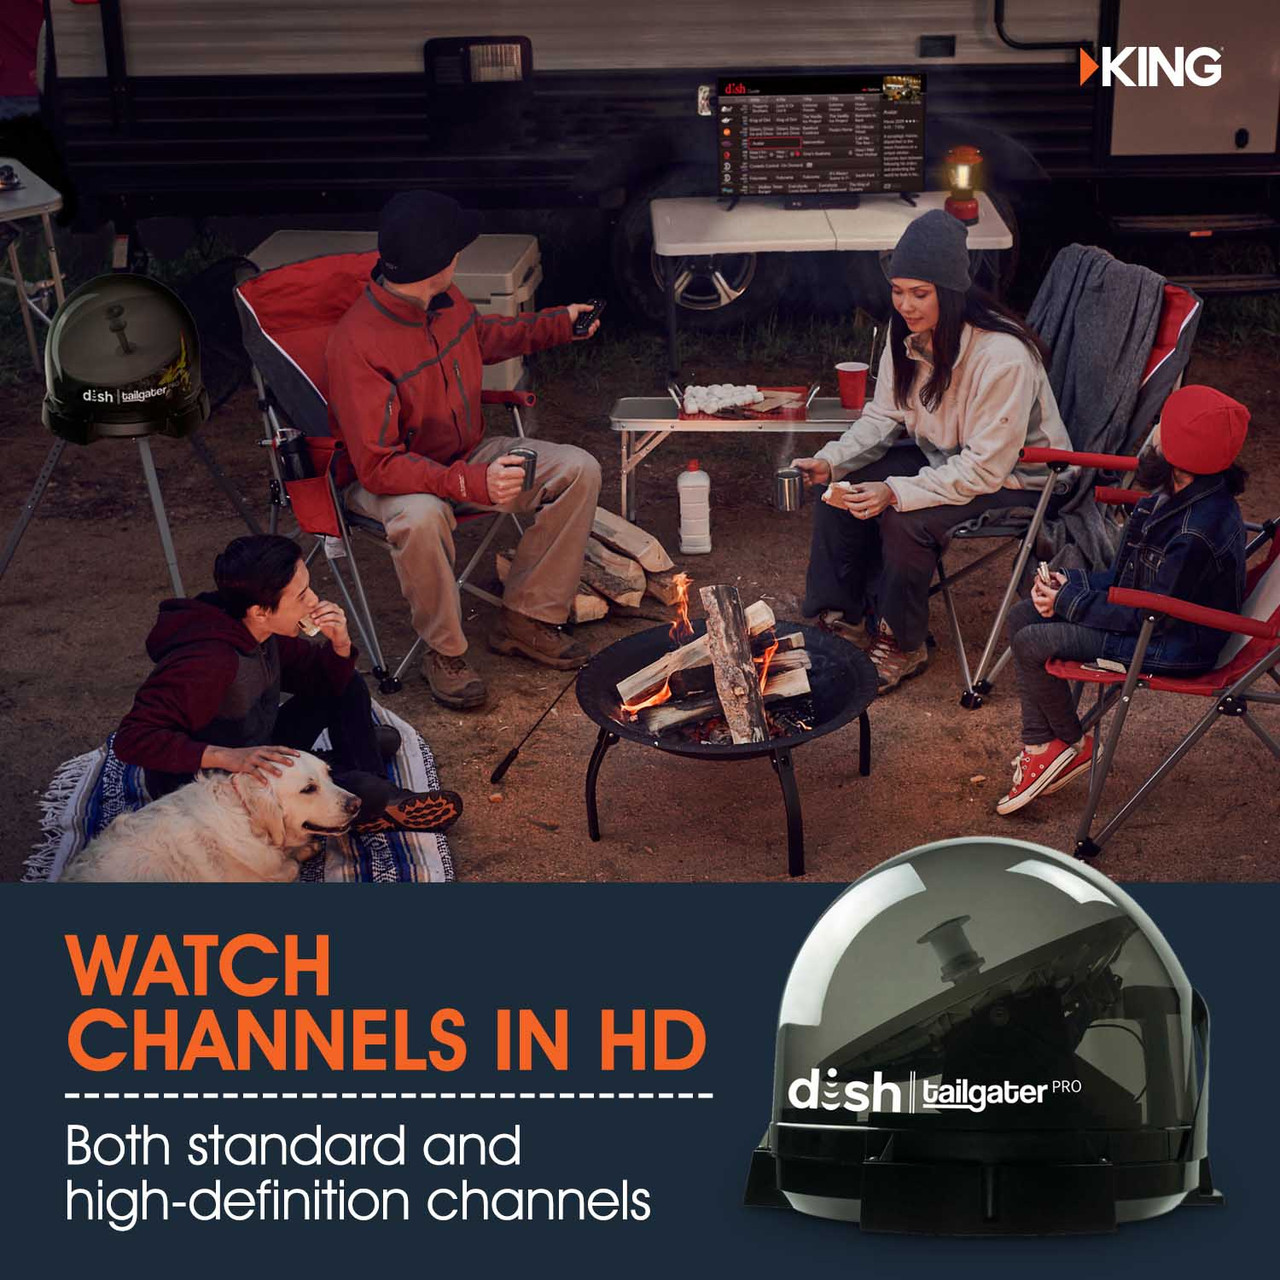 The DISH network portable satellite dish from KING allows you to watch your favorite programming in both standard definition as well as HD. Better yet, the KING Tailgater Pro supports up to two DISH receivers (sold separately), allowing you to watch two TVs at the same time.